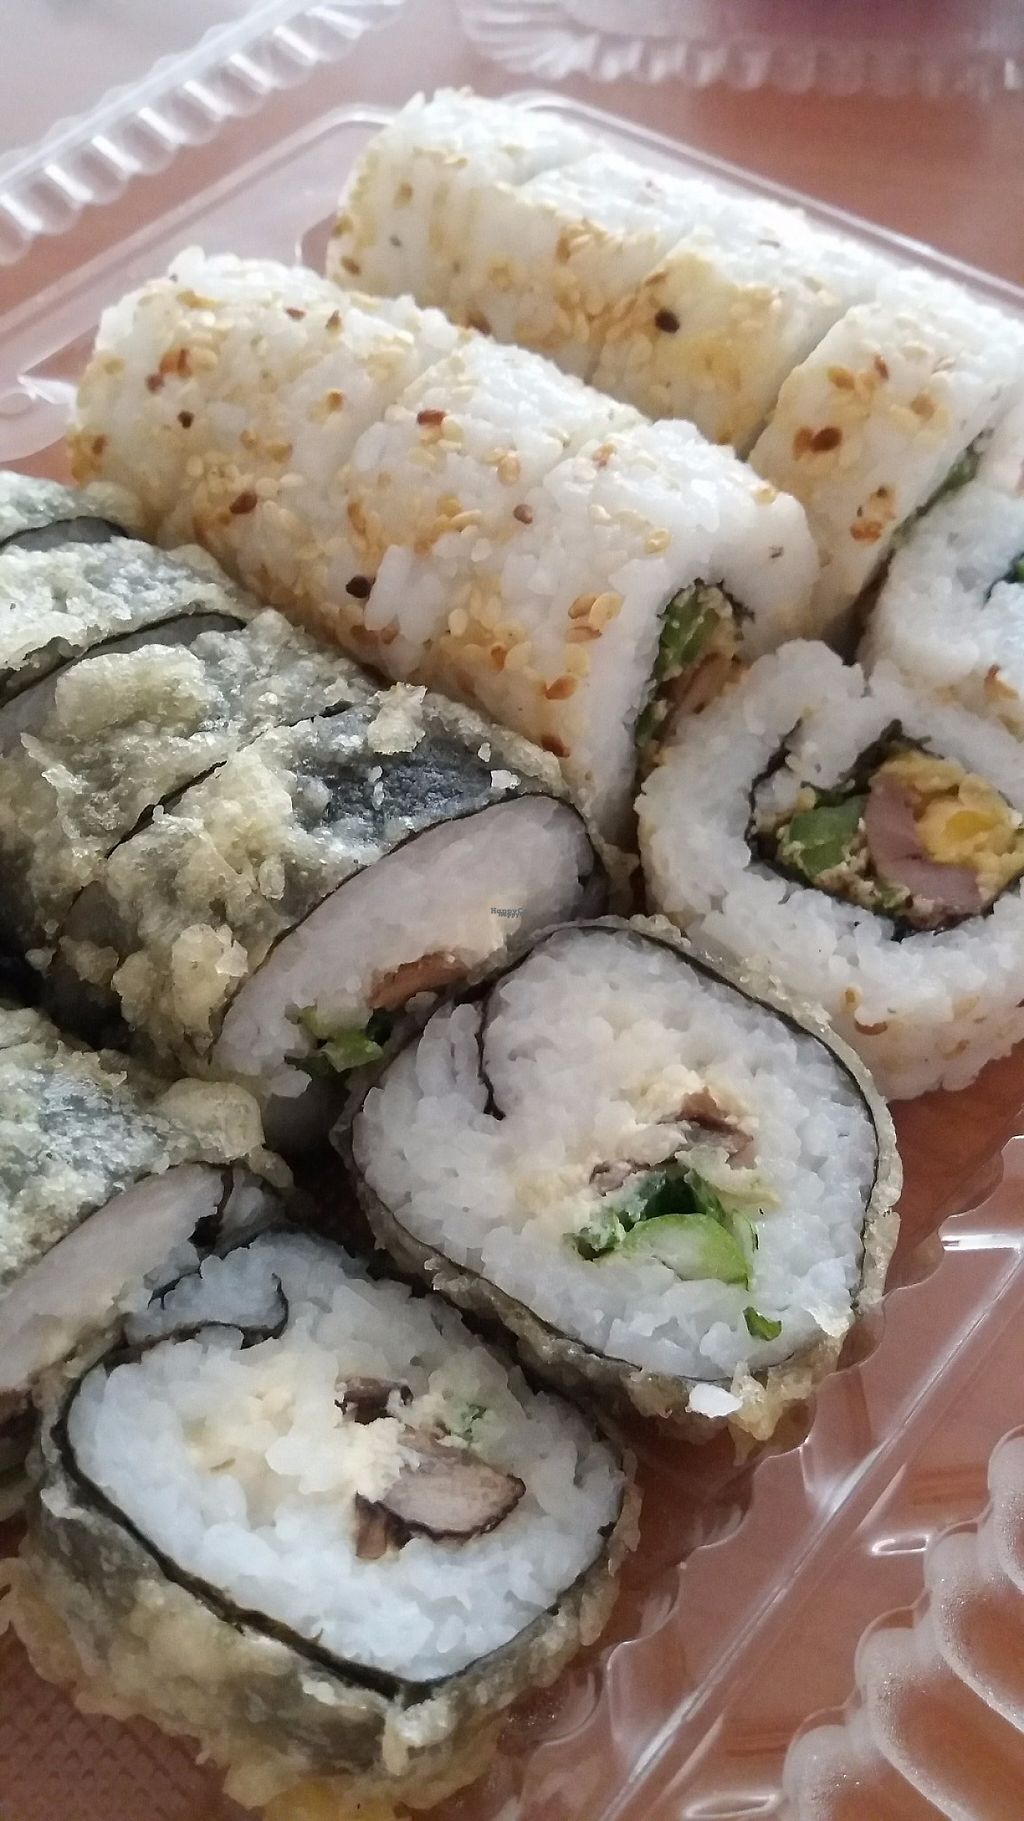 """Photo of Runaway Sushi  by <a href=""""/members/profile/Arta"""">Arta</a> <br/>Vegan promo <br/> March 17, 2017  - <a href='/contact/abuse/image/78099/237629'>Report</a>"""